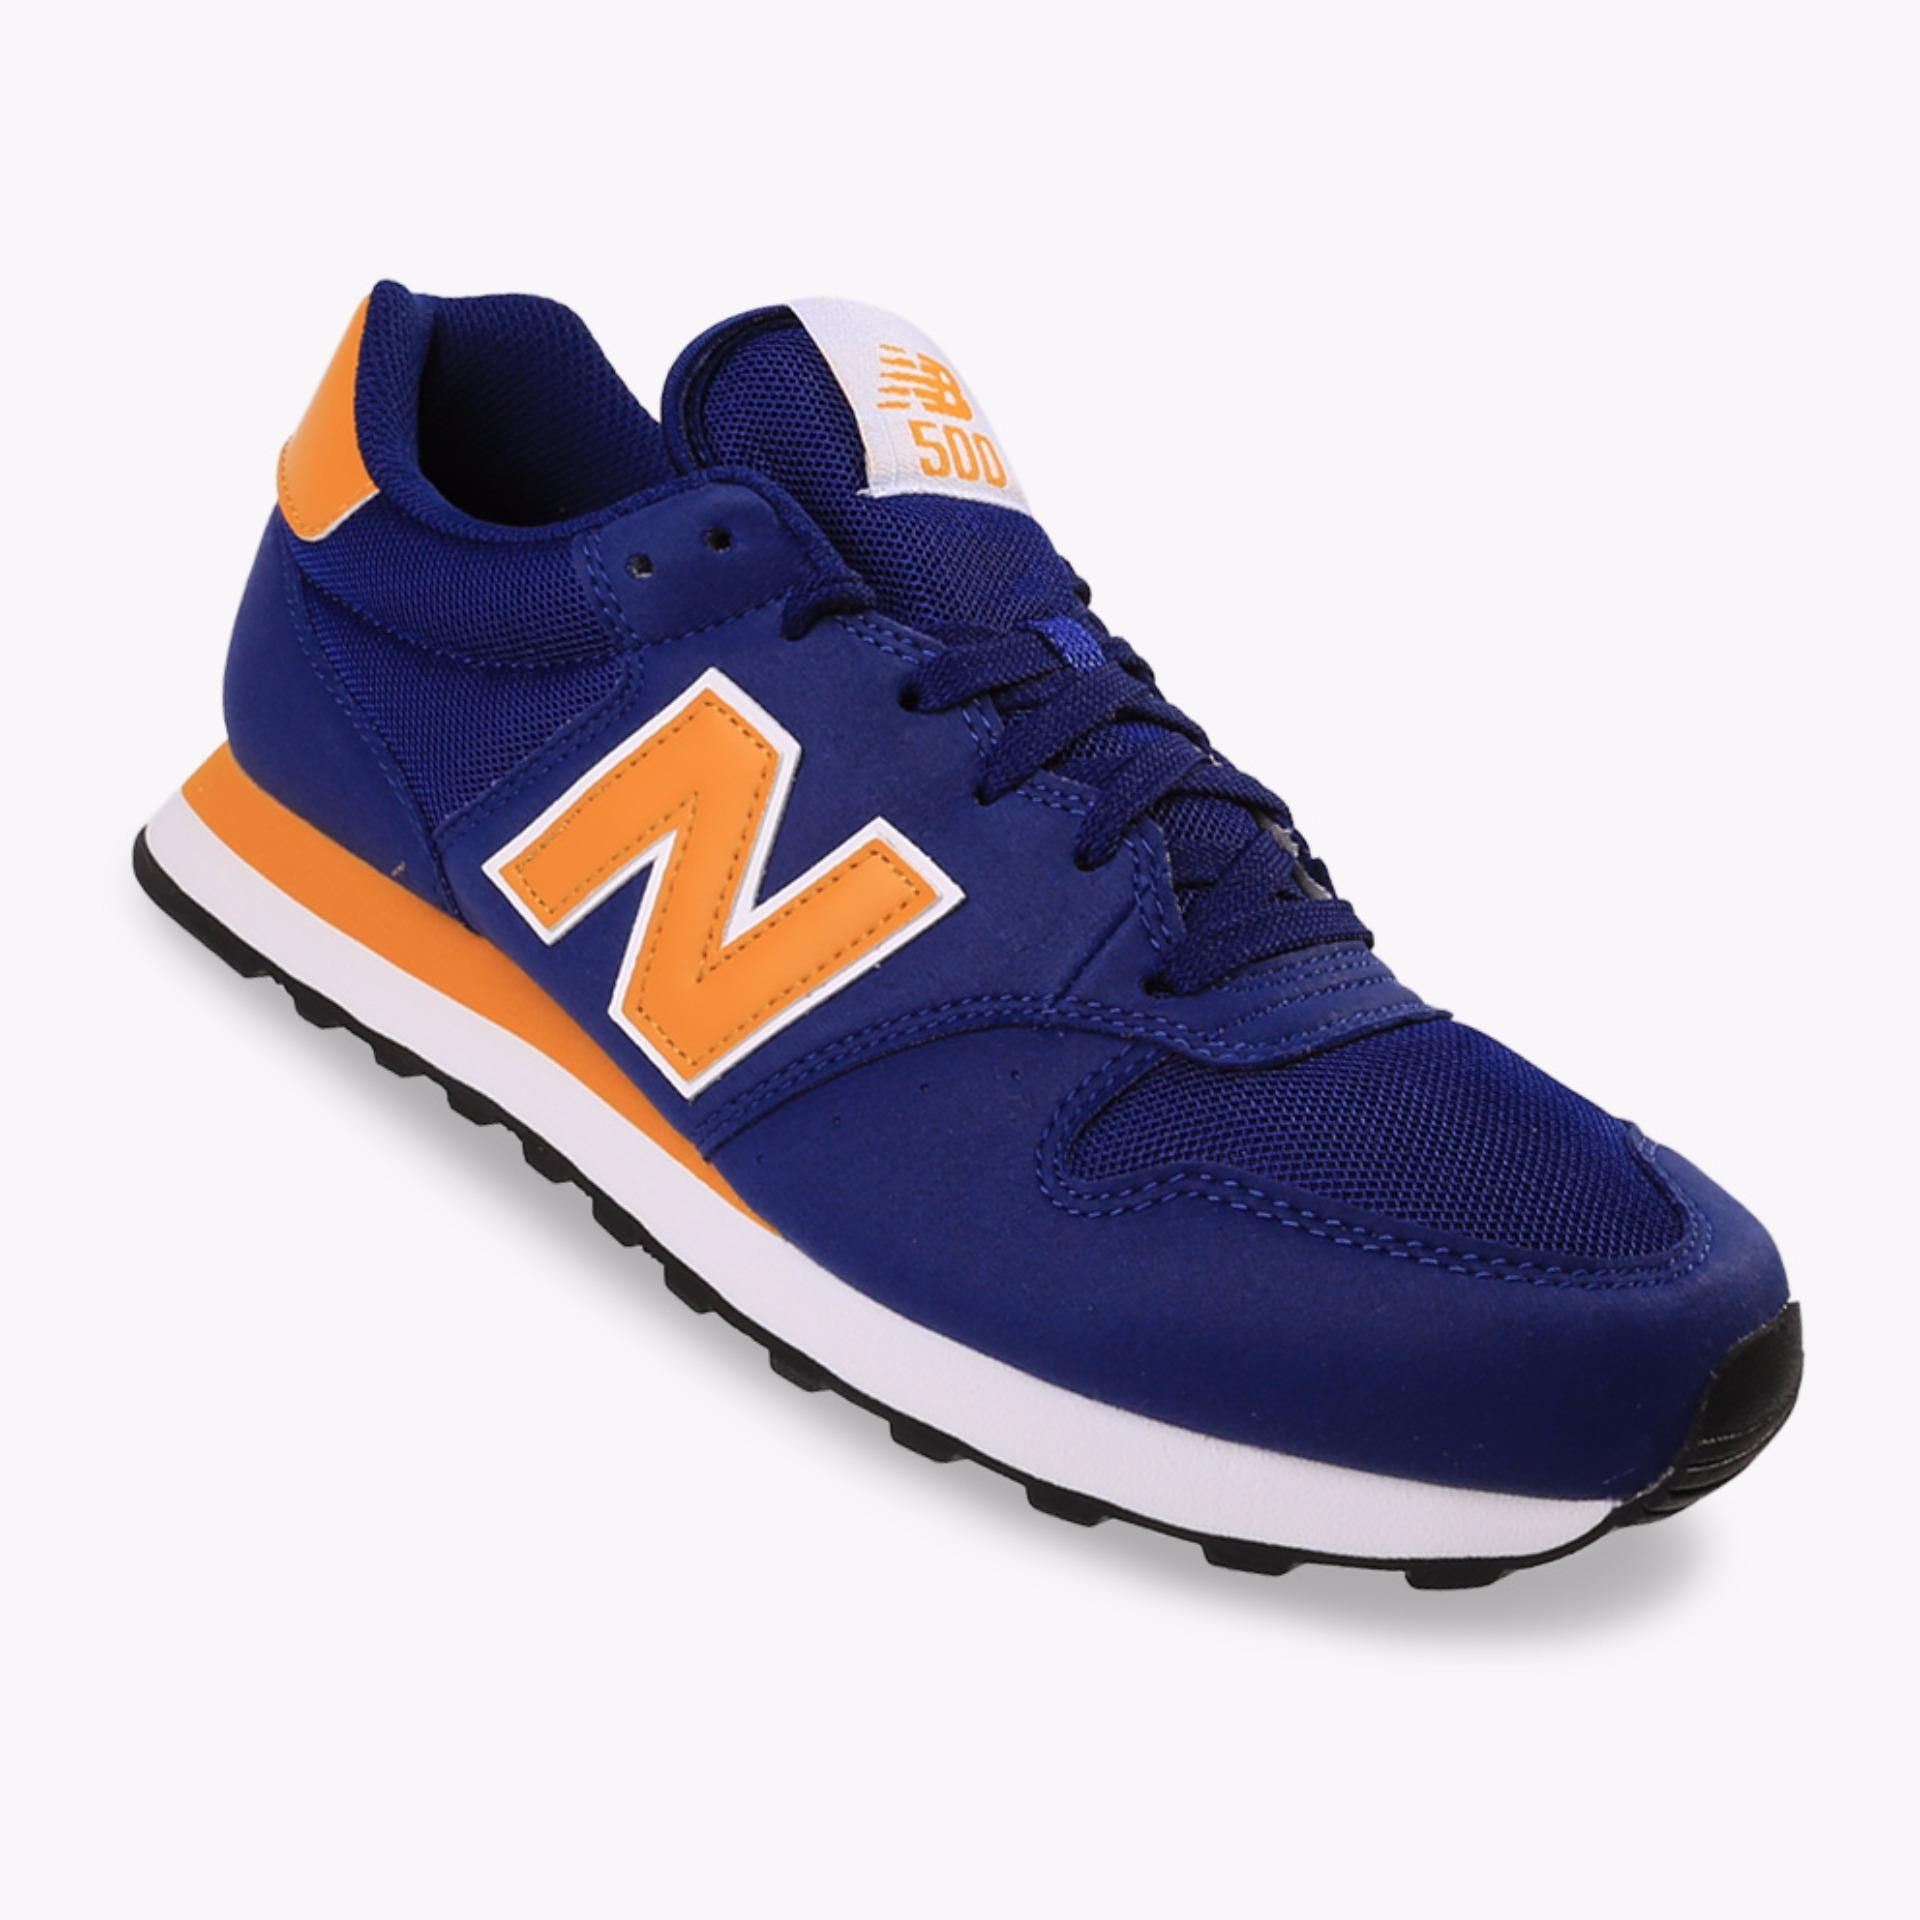 Jual New Balance Gm500 Men S Lifestyle Shoes Biru Lengkap